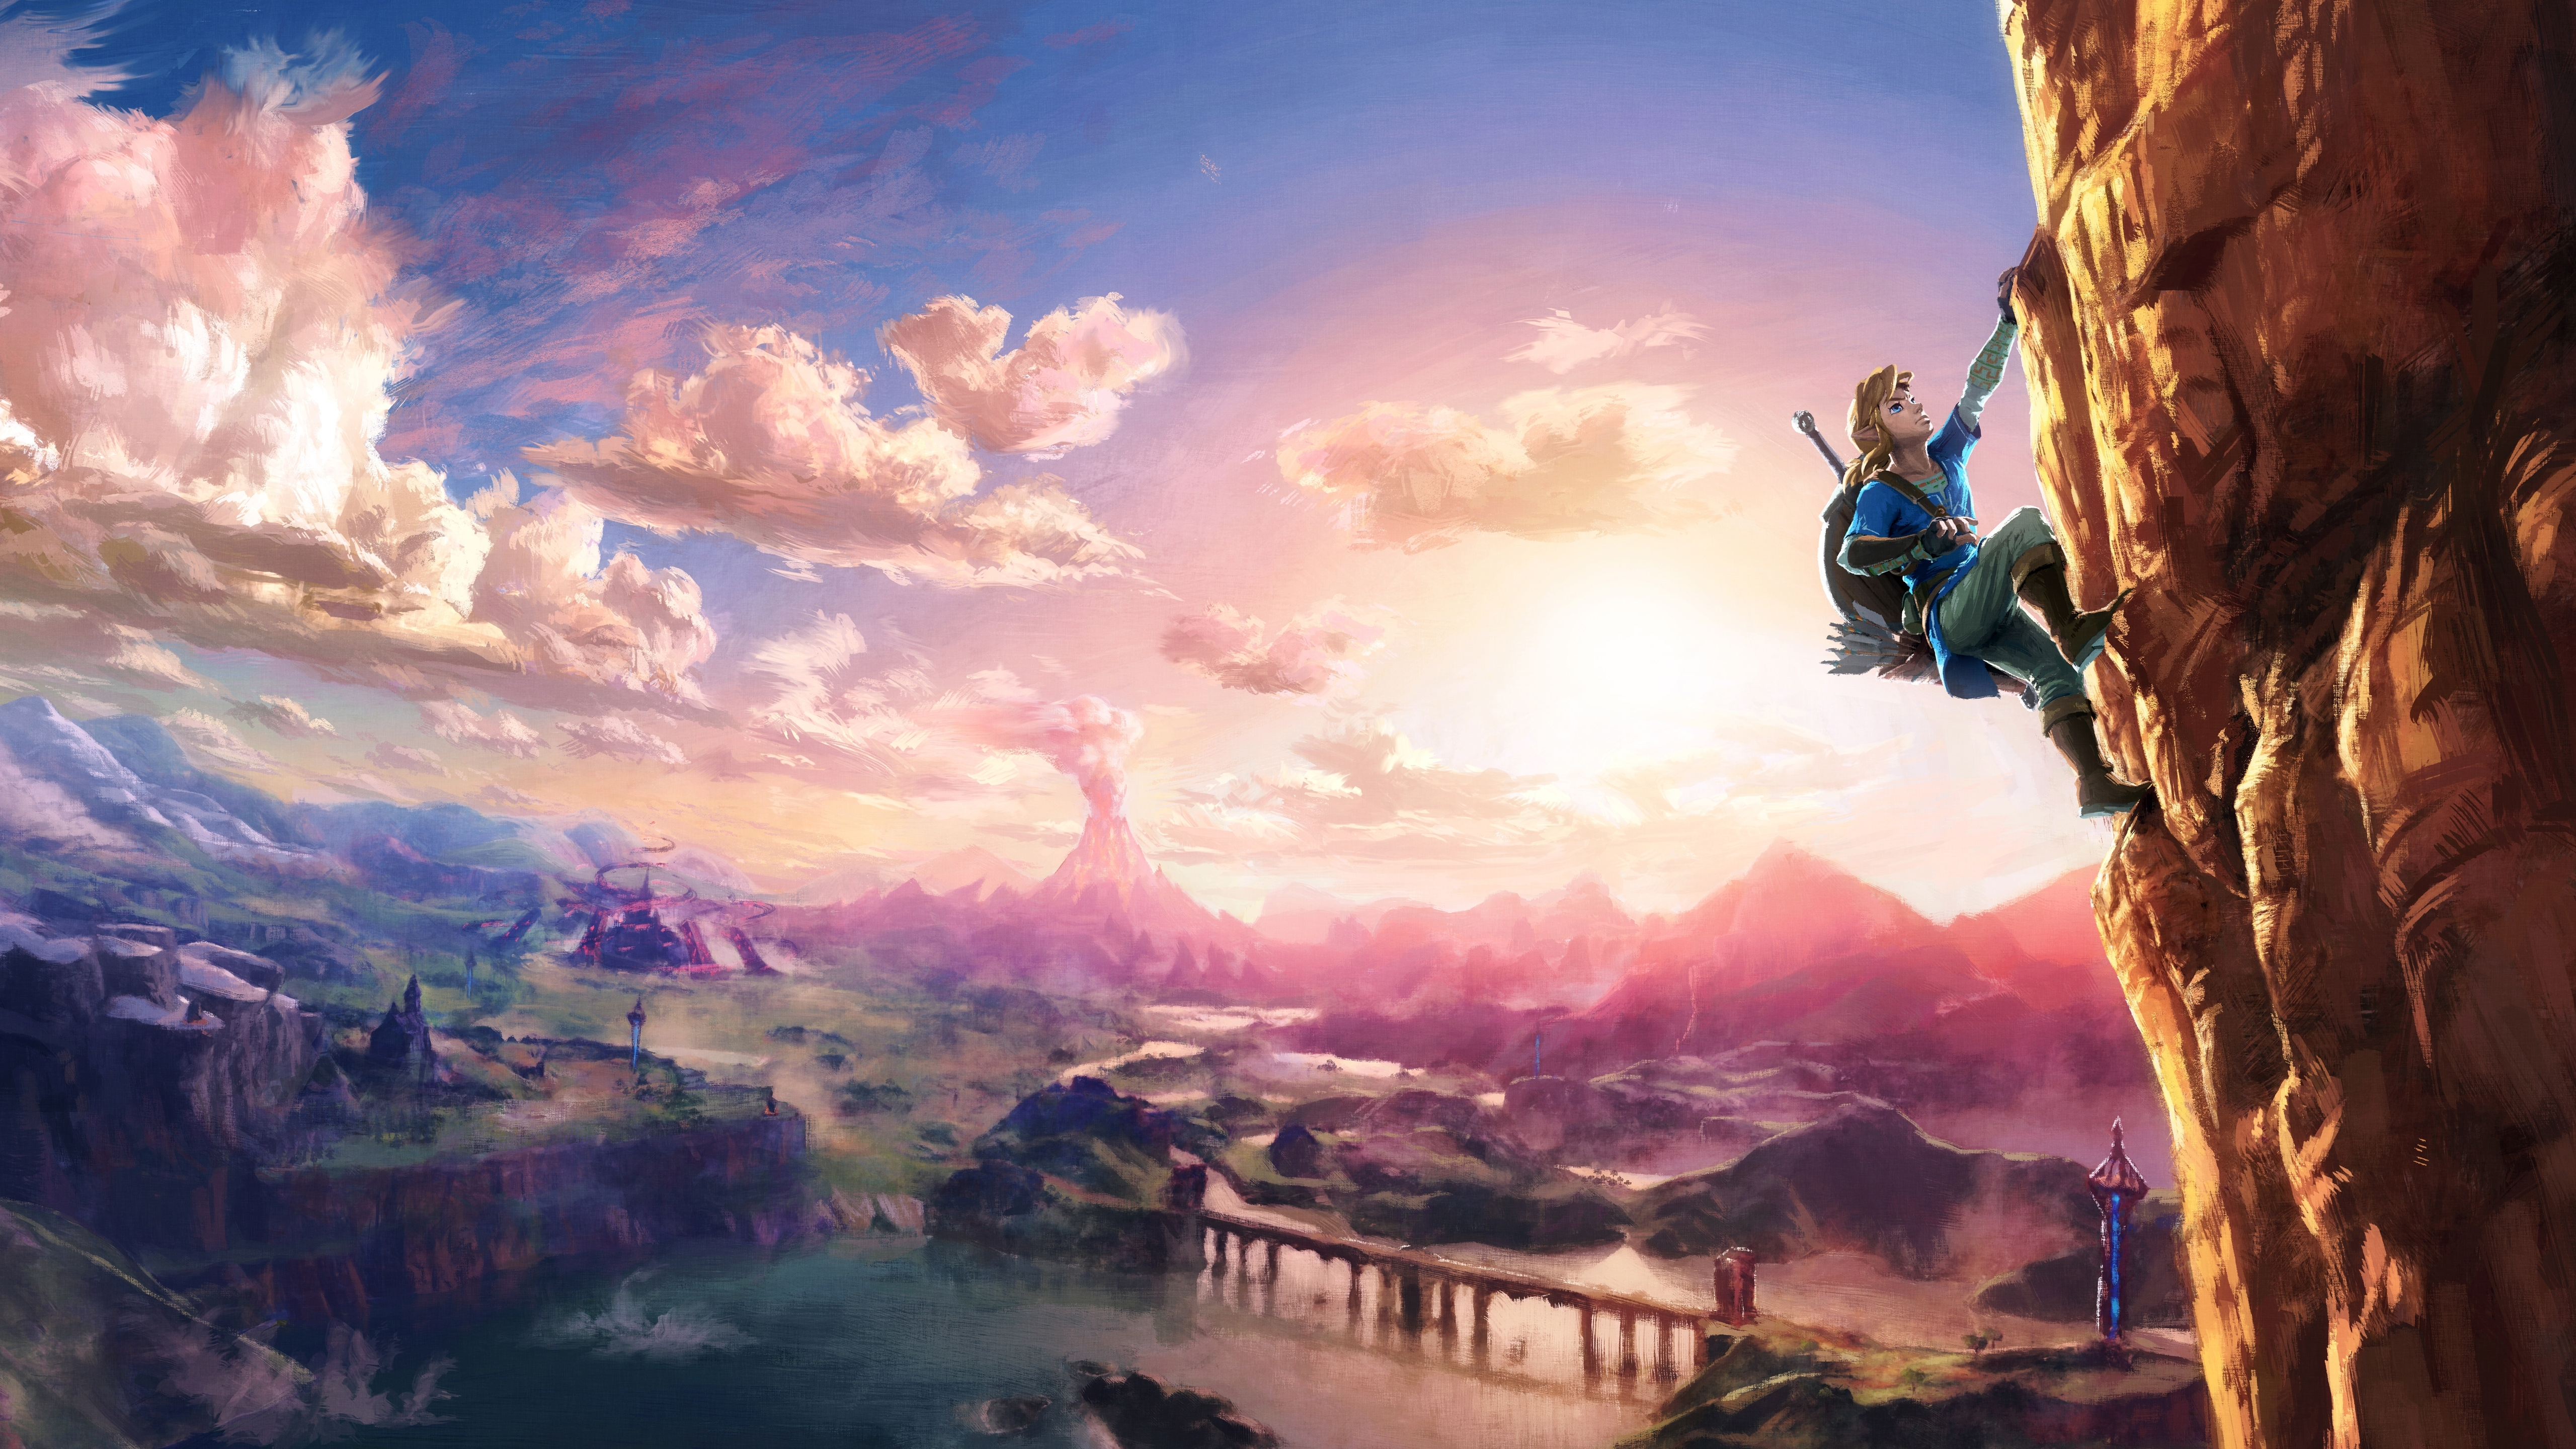 wallpaper the legend of zelda, breath of the wild, 5k, games, #1160